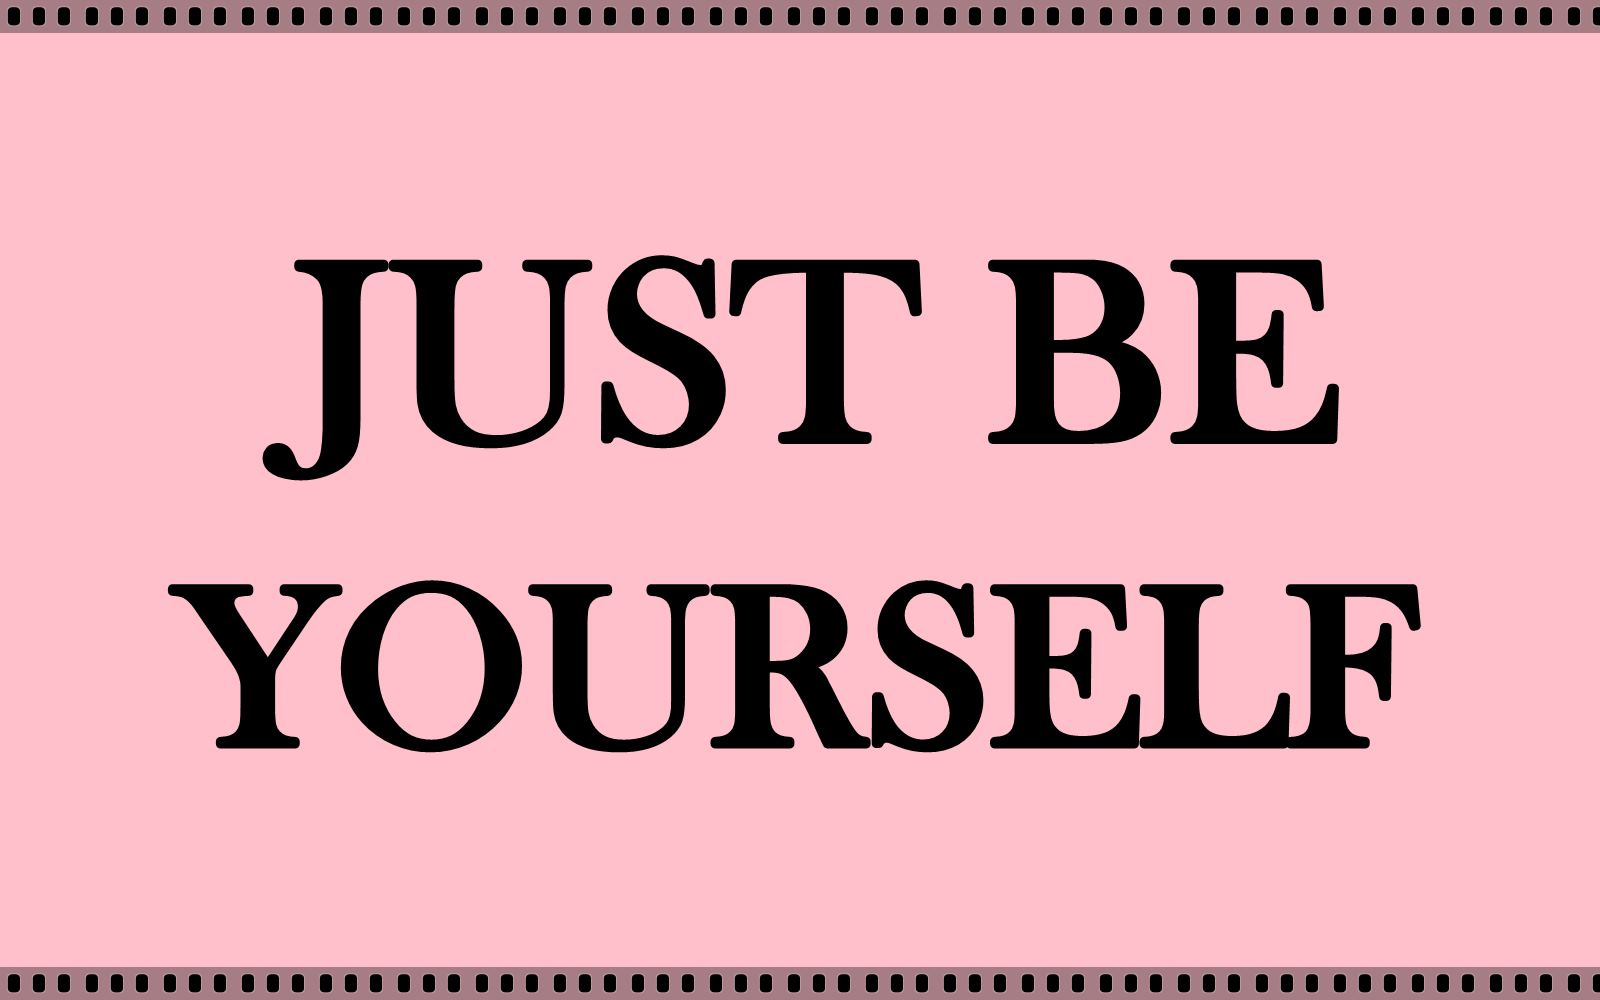 Just Be Yourself Quotes Hd Wallpaper - Yourself Quotes Hd - HD Wallpaper